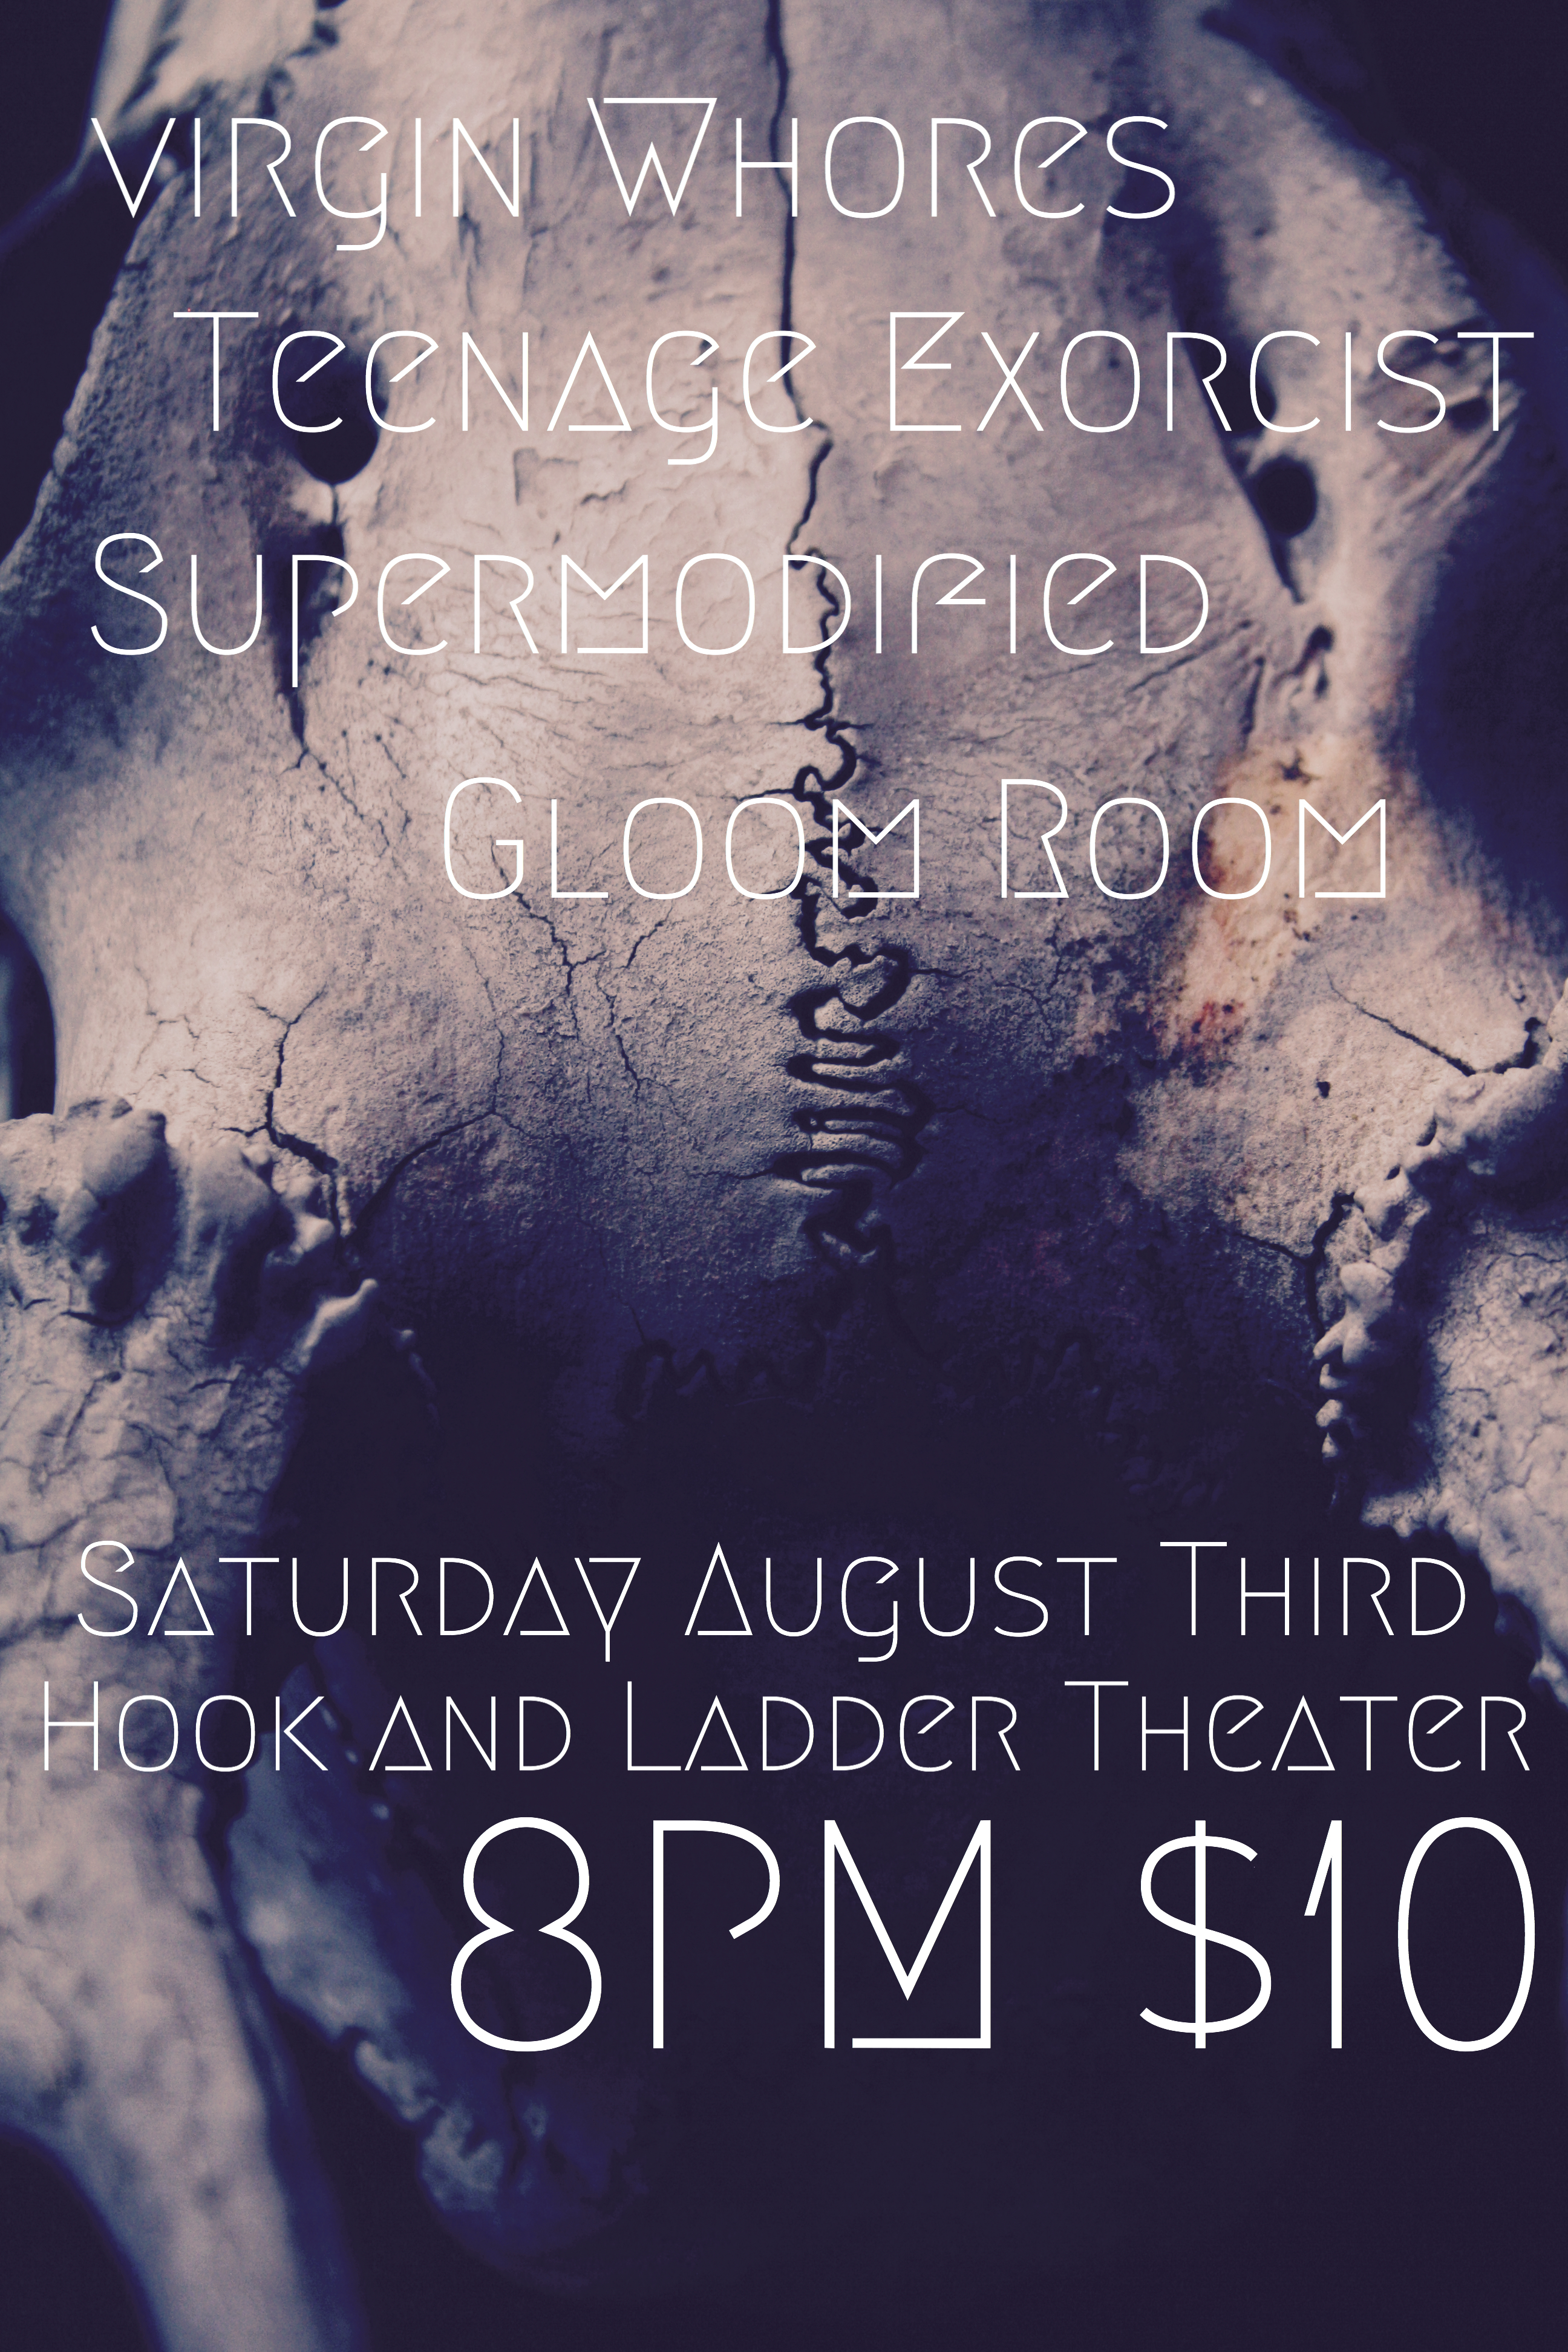 Virgin Whores w/ Teenage Exorcist, Supermodified, and Gloom Room on Saturday, August 3 at The Hook